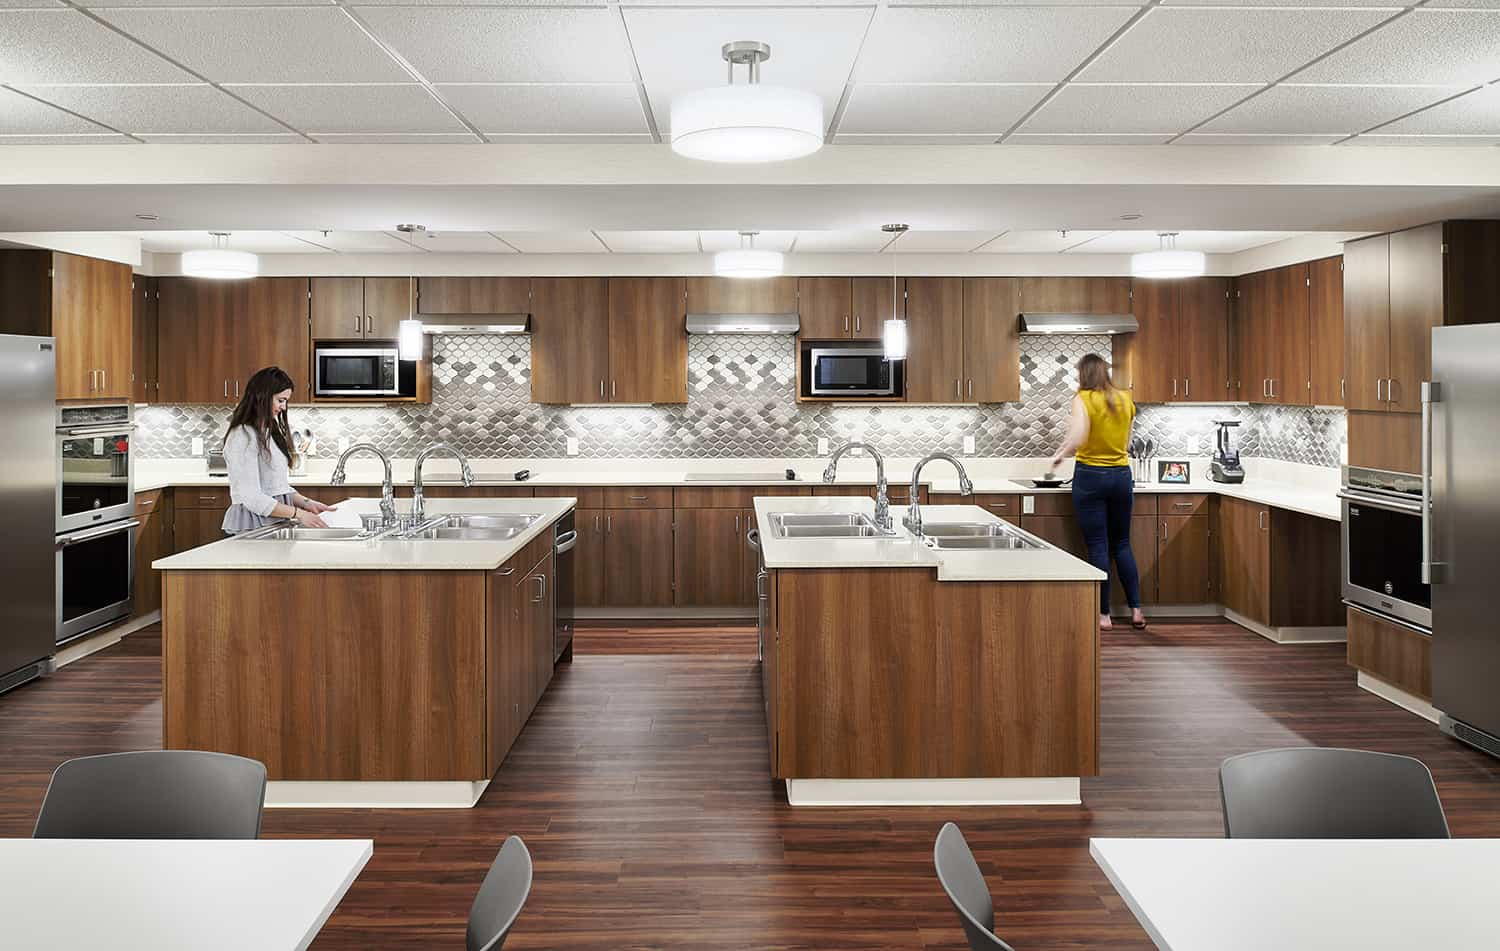 Focus on the shared kitchen area with four open food prep stations and warm wood paneling.